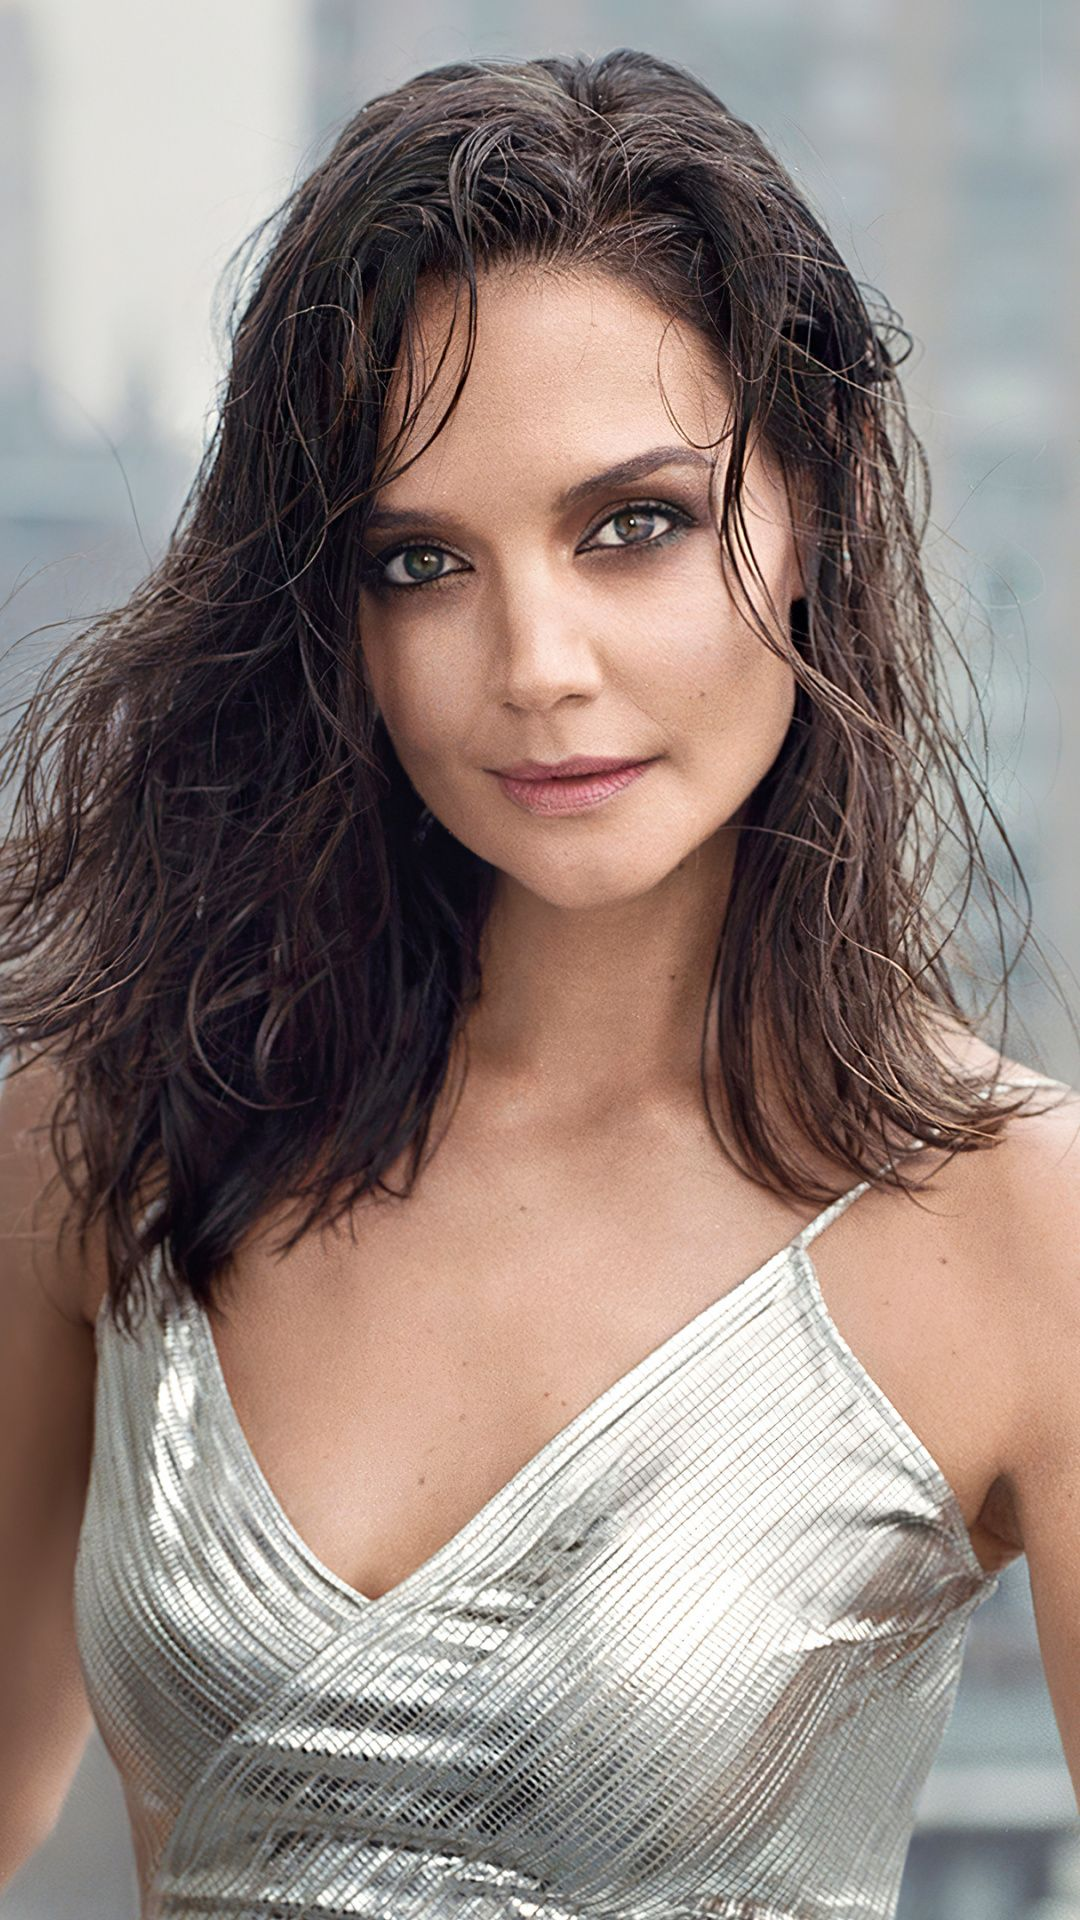 1080x1920 Katie Holmes Shapes Us Magazine 2020 Wallpaper In 2020